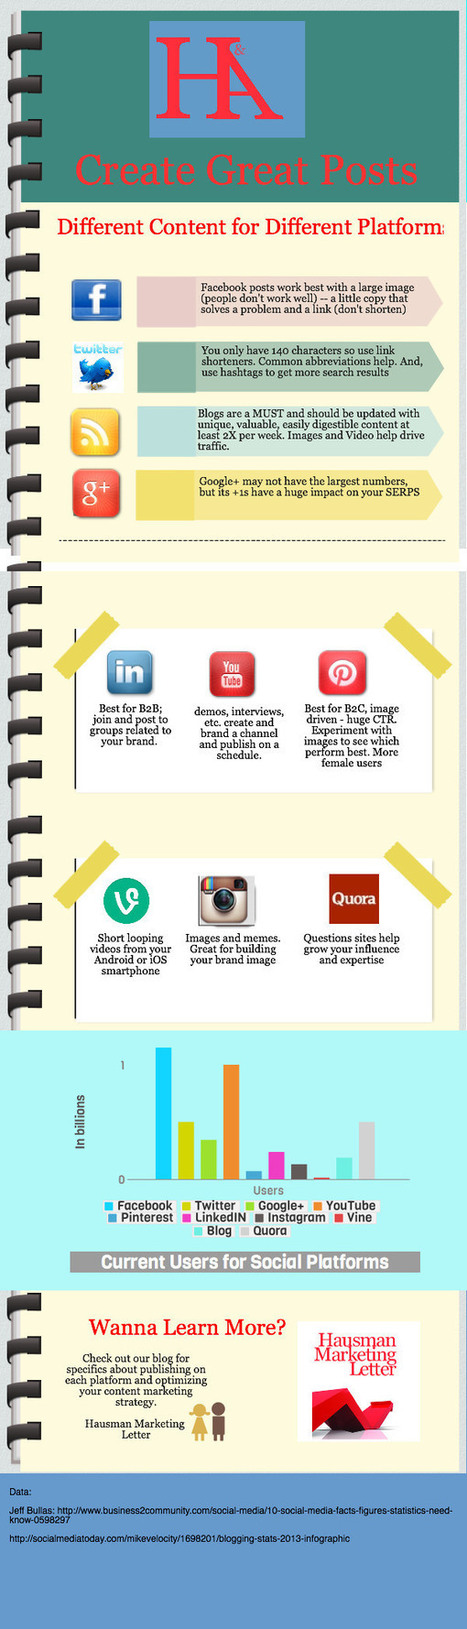 Content Marketing: Create a Perfect Post - Business 2 Community   social media market research   Scoop.it